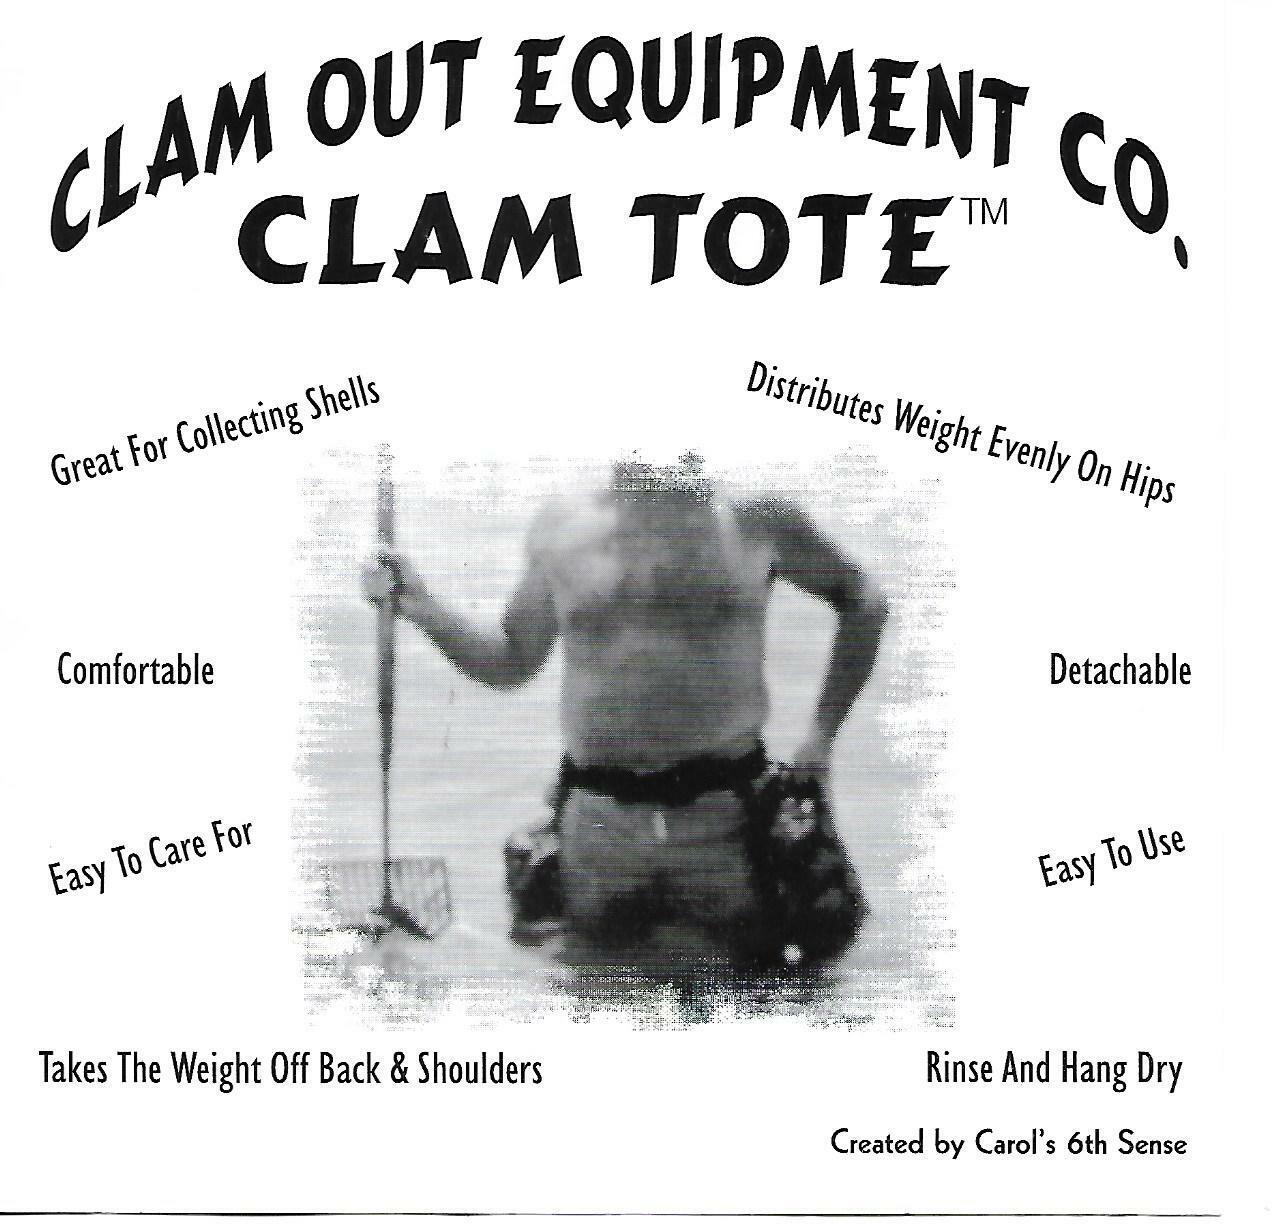 Clam  Out Equipment Co. Clam Tote Collecting Shells, Clams Detachable Bags  discount sales